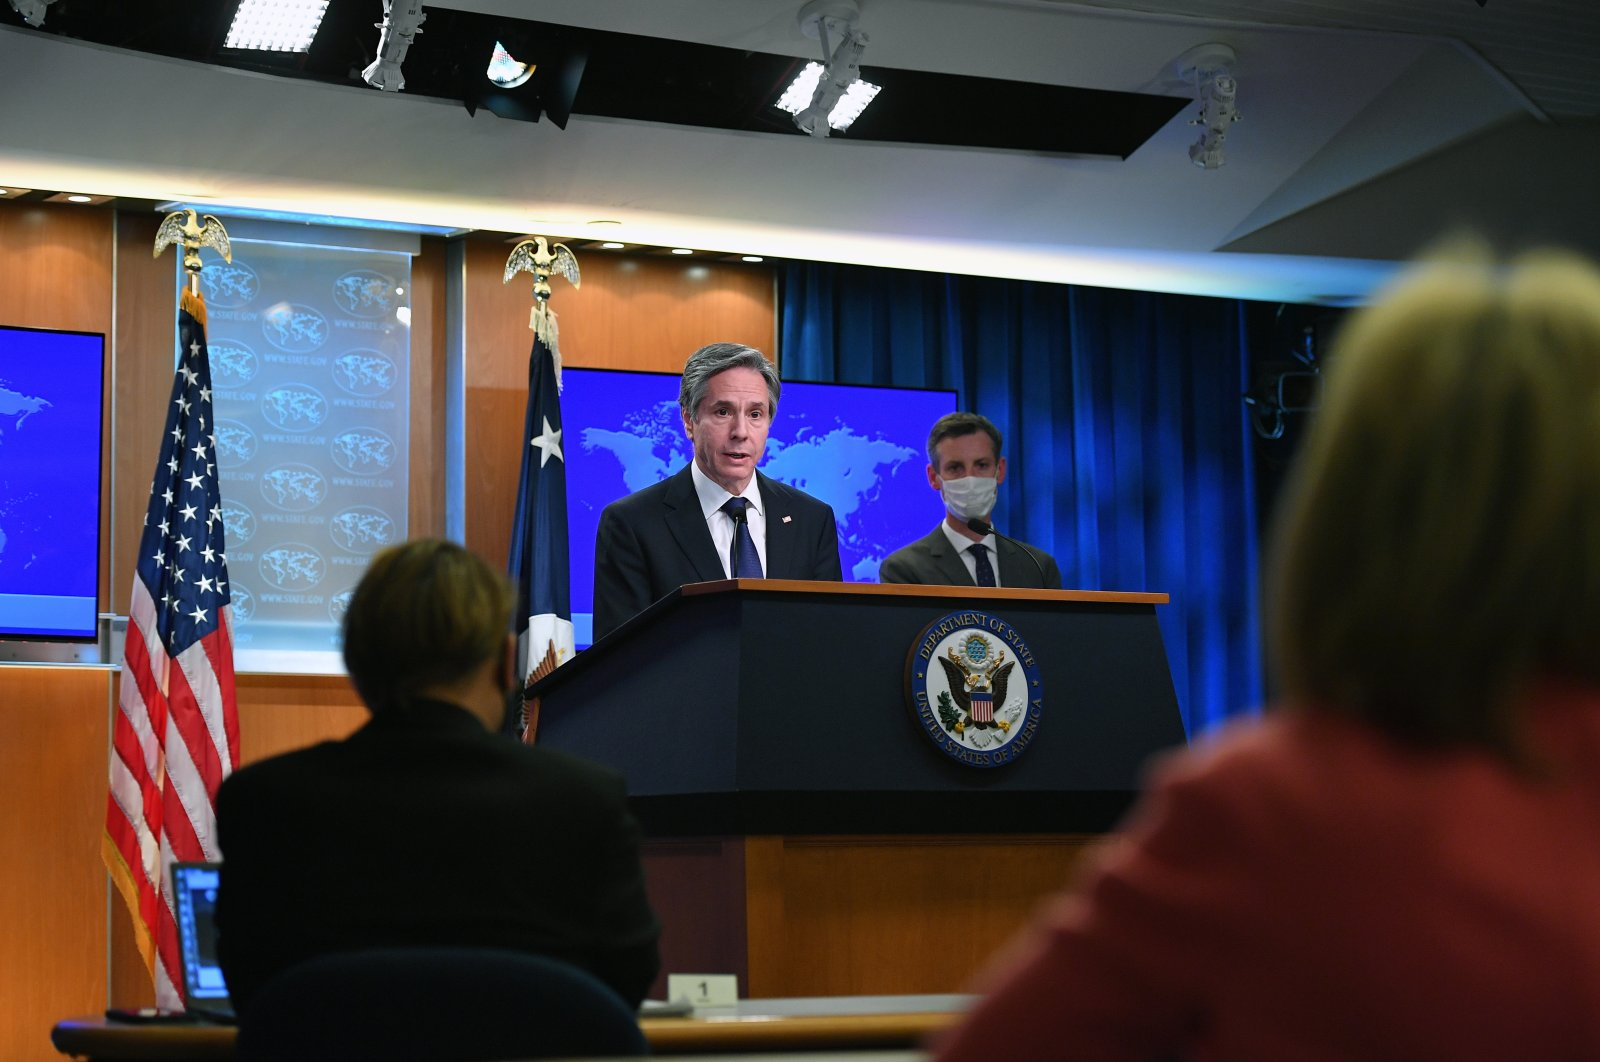 """U.S. Secretary of State Antony Blinken speaks about the release of the """"2020 Country Reports on Human Rights Practices,"""" at the State Department in Washington, U.S., March 30, 2021. (AP Photo)"""